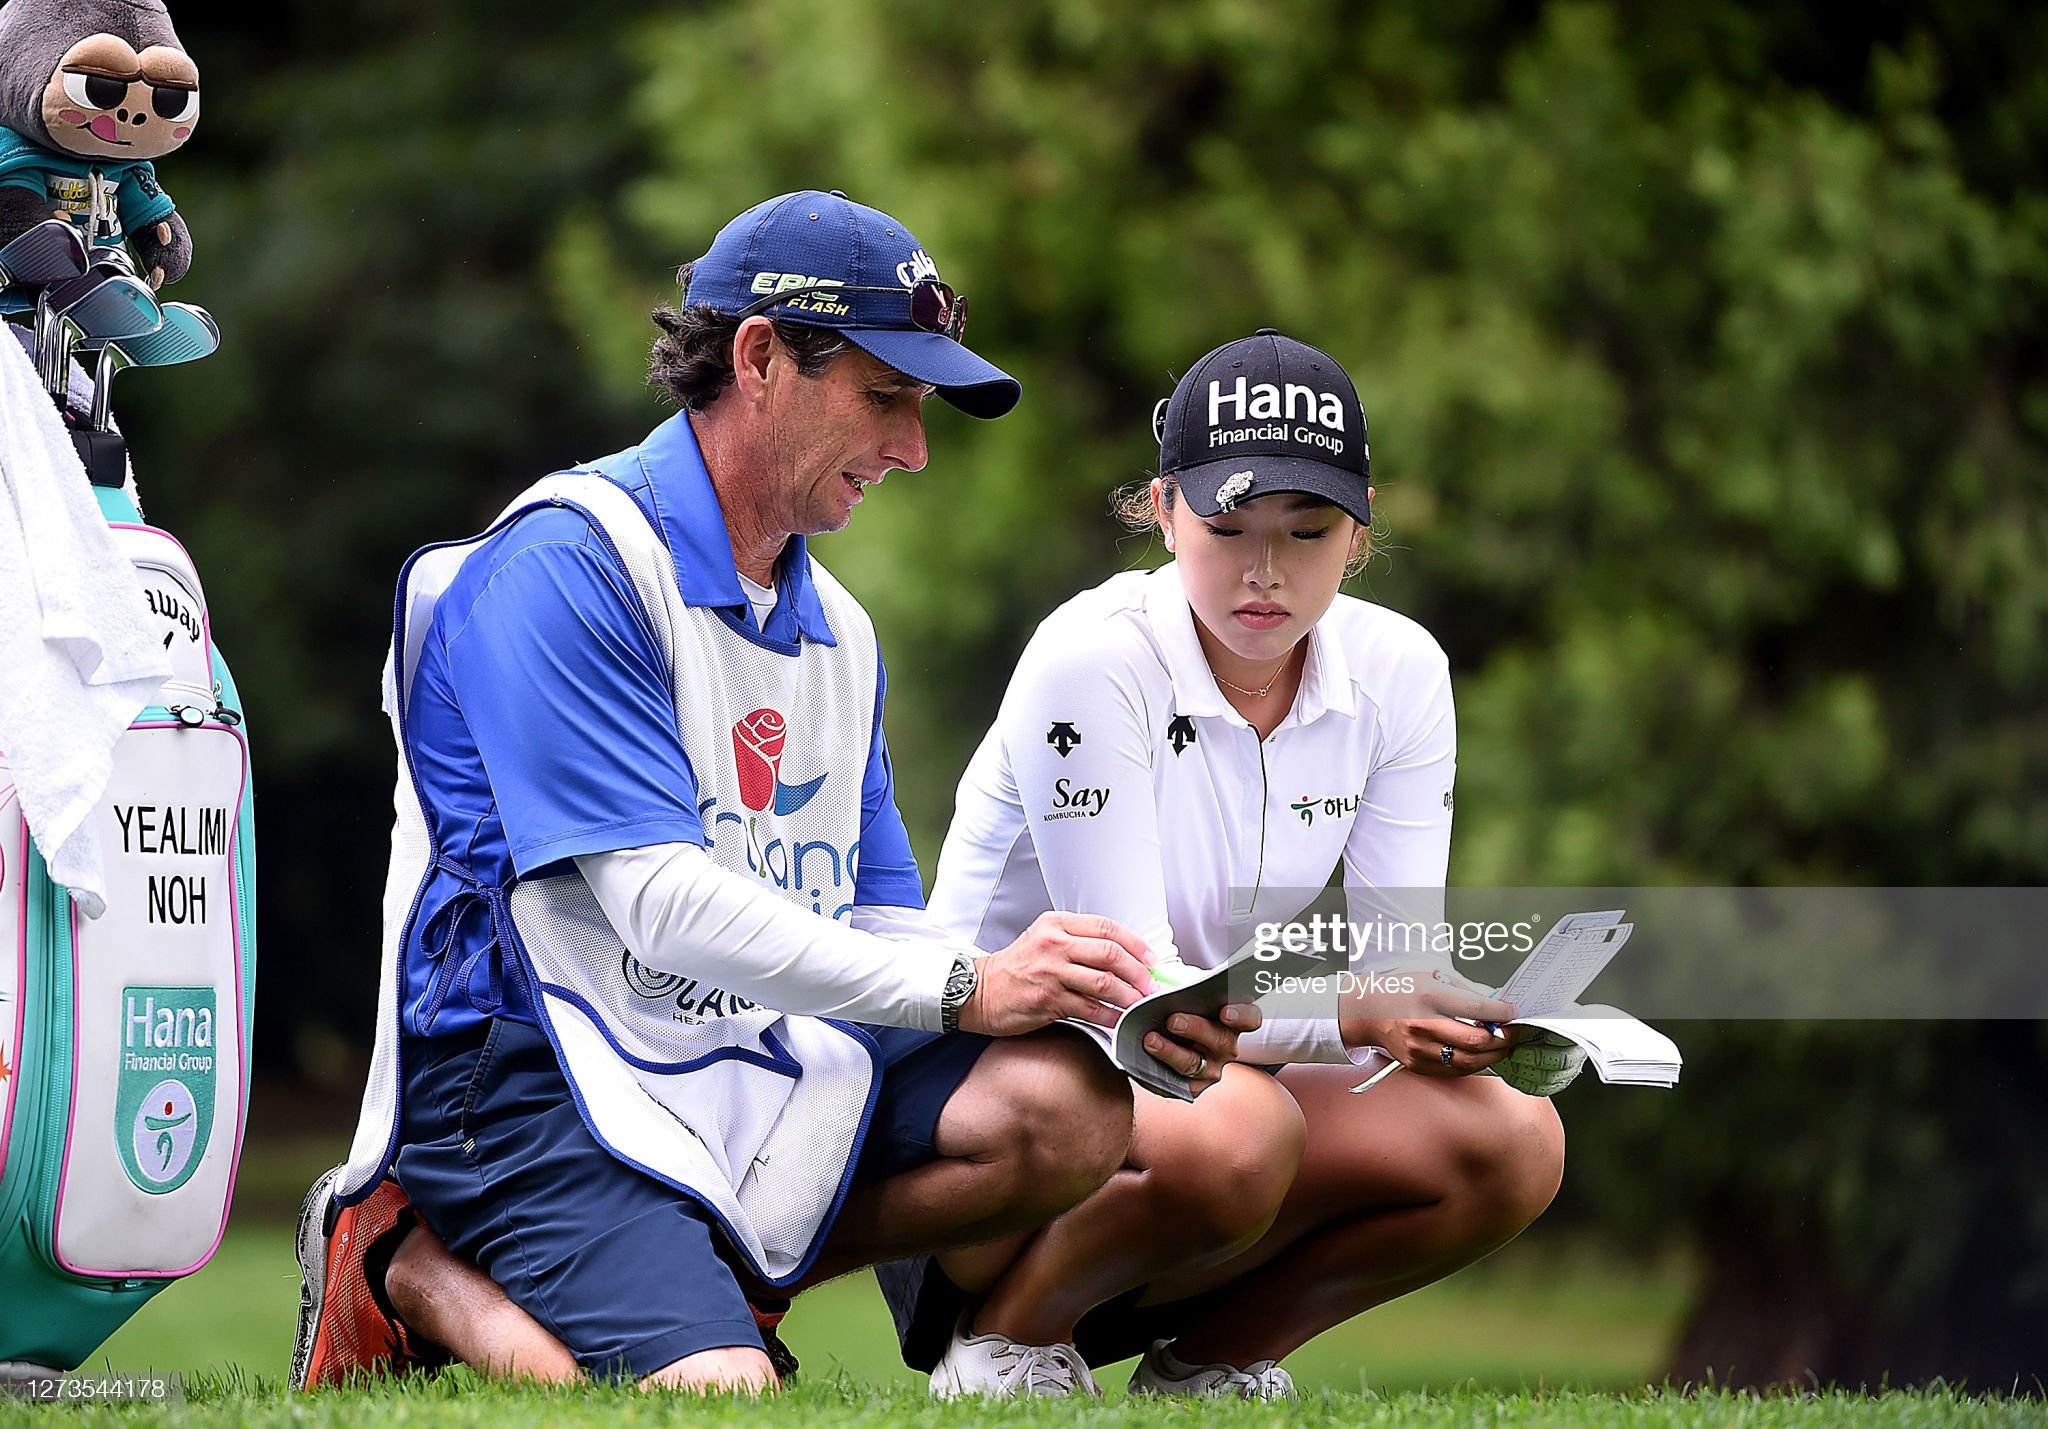 https://media.gettyimages.com/photos/yealimi-noh-speaks-with-her-caddie-on-the-17th-hole-during-round-two-picture-id1273544178?s=2048x2048